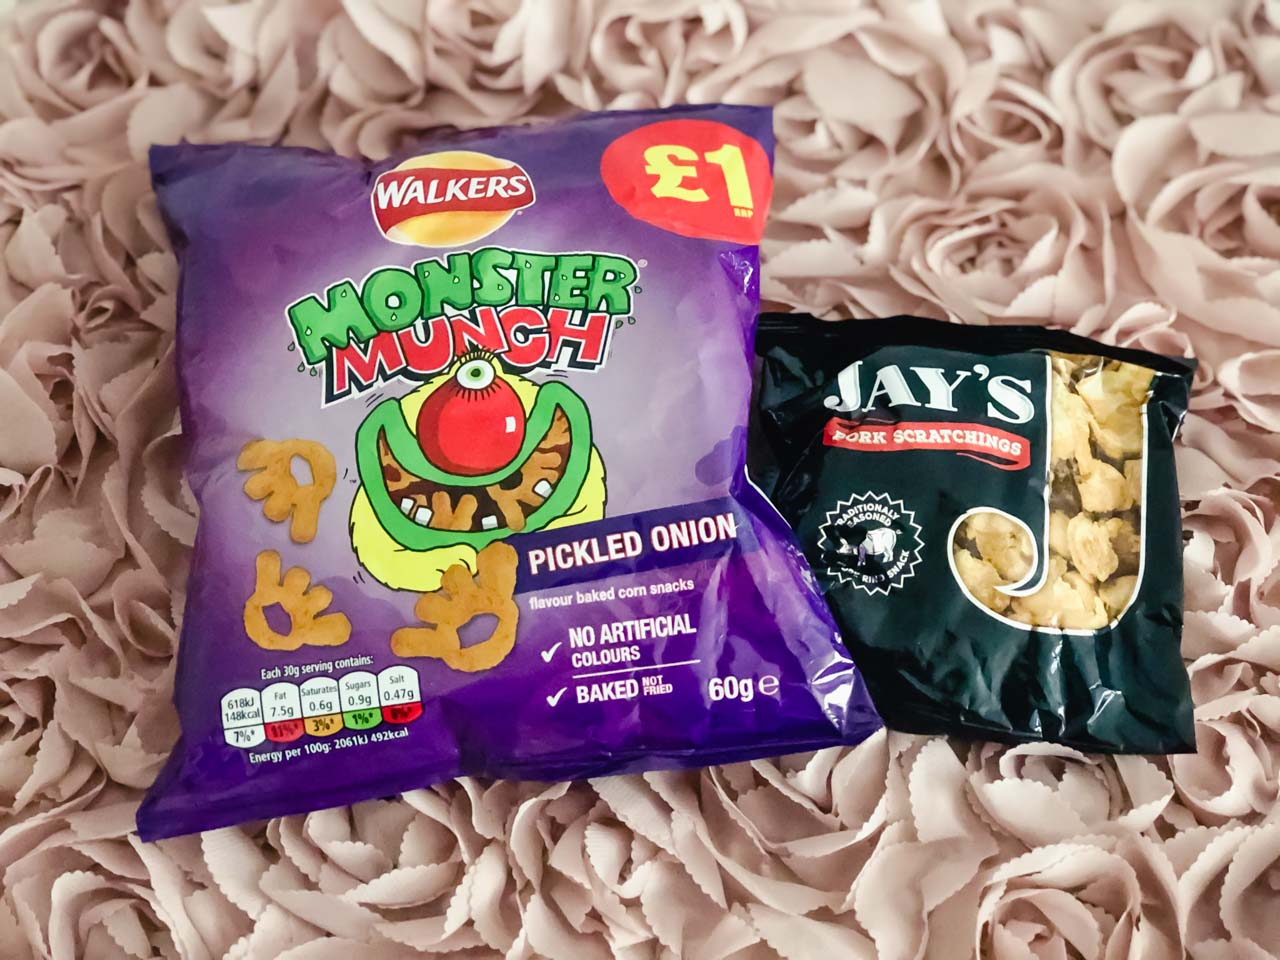 British snacks: A pack of pickled onion Monster Munch and Jay's pork scratchings against a pink background